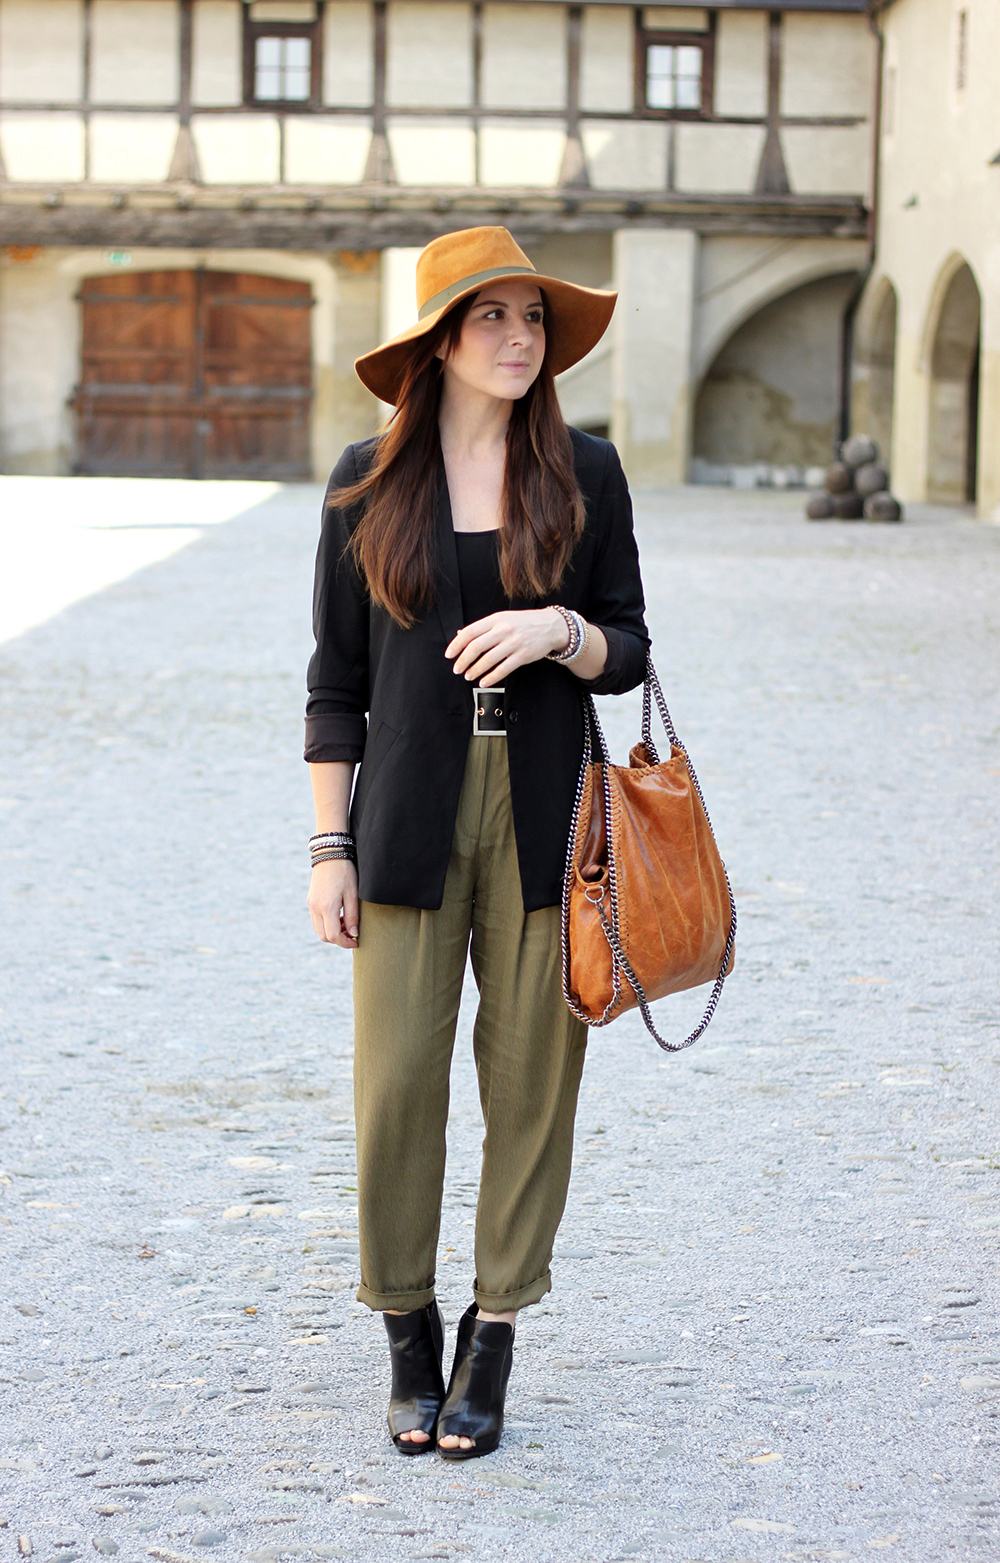 who is mocca, fashionblog tirol, fashionblog oesterreich, bundfaltenhose khaki, H&M Trend, peeptoe wedges zara kleiderkreisel, zara lederhut braun, long blazer, taillenguertel